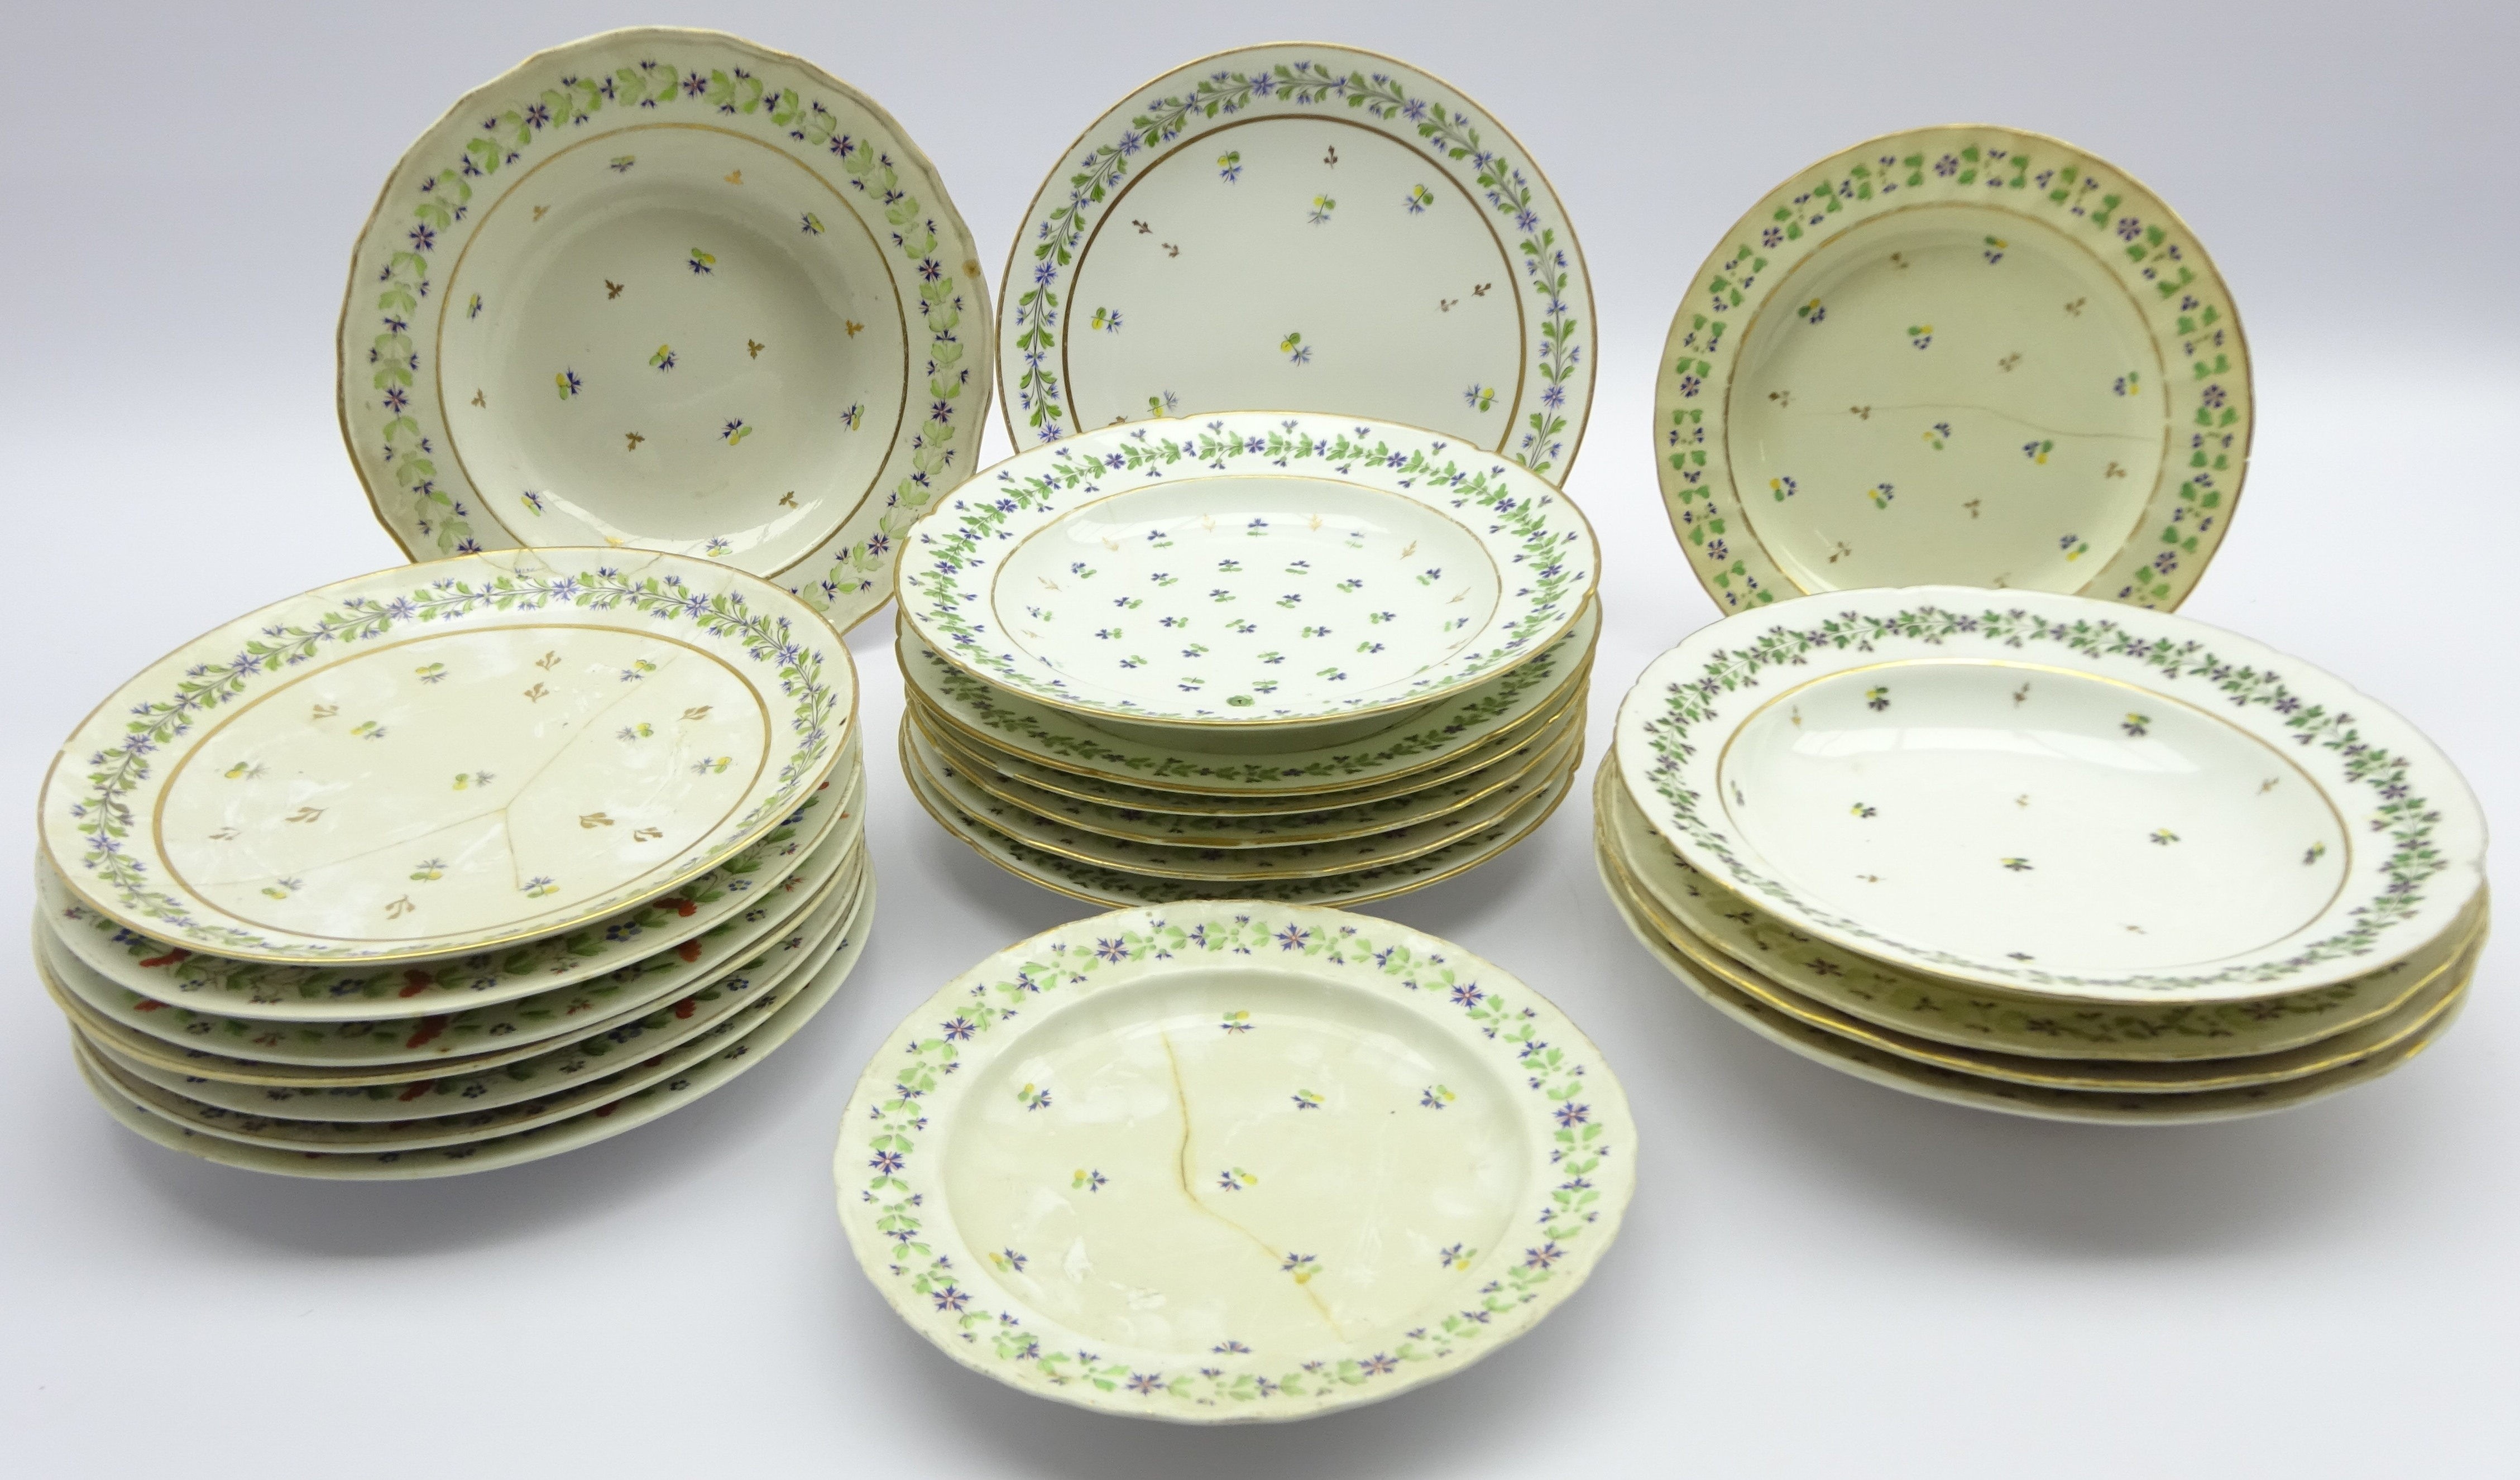 Lot 40 - Assortment of 19th century English and Continental tableware, including Copeland,